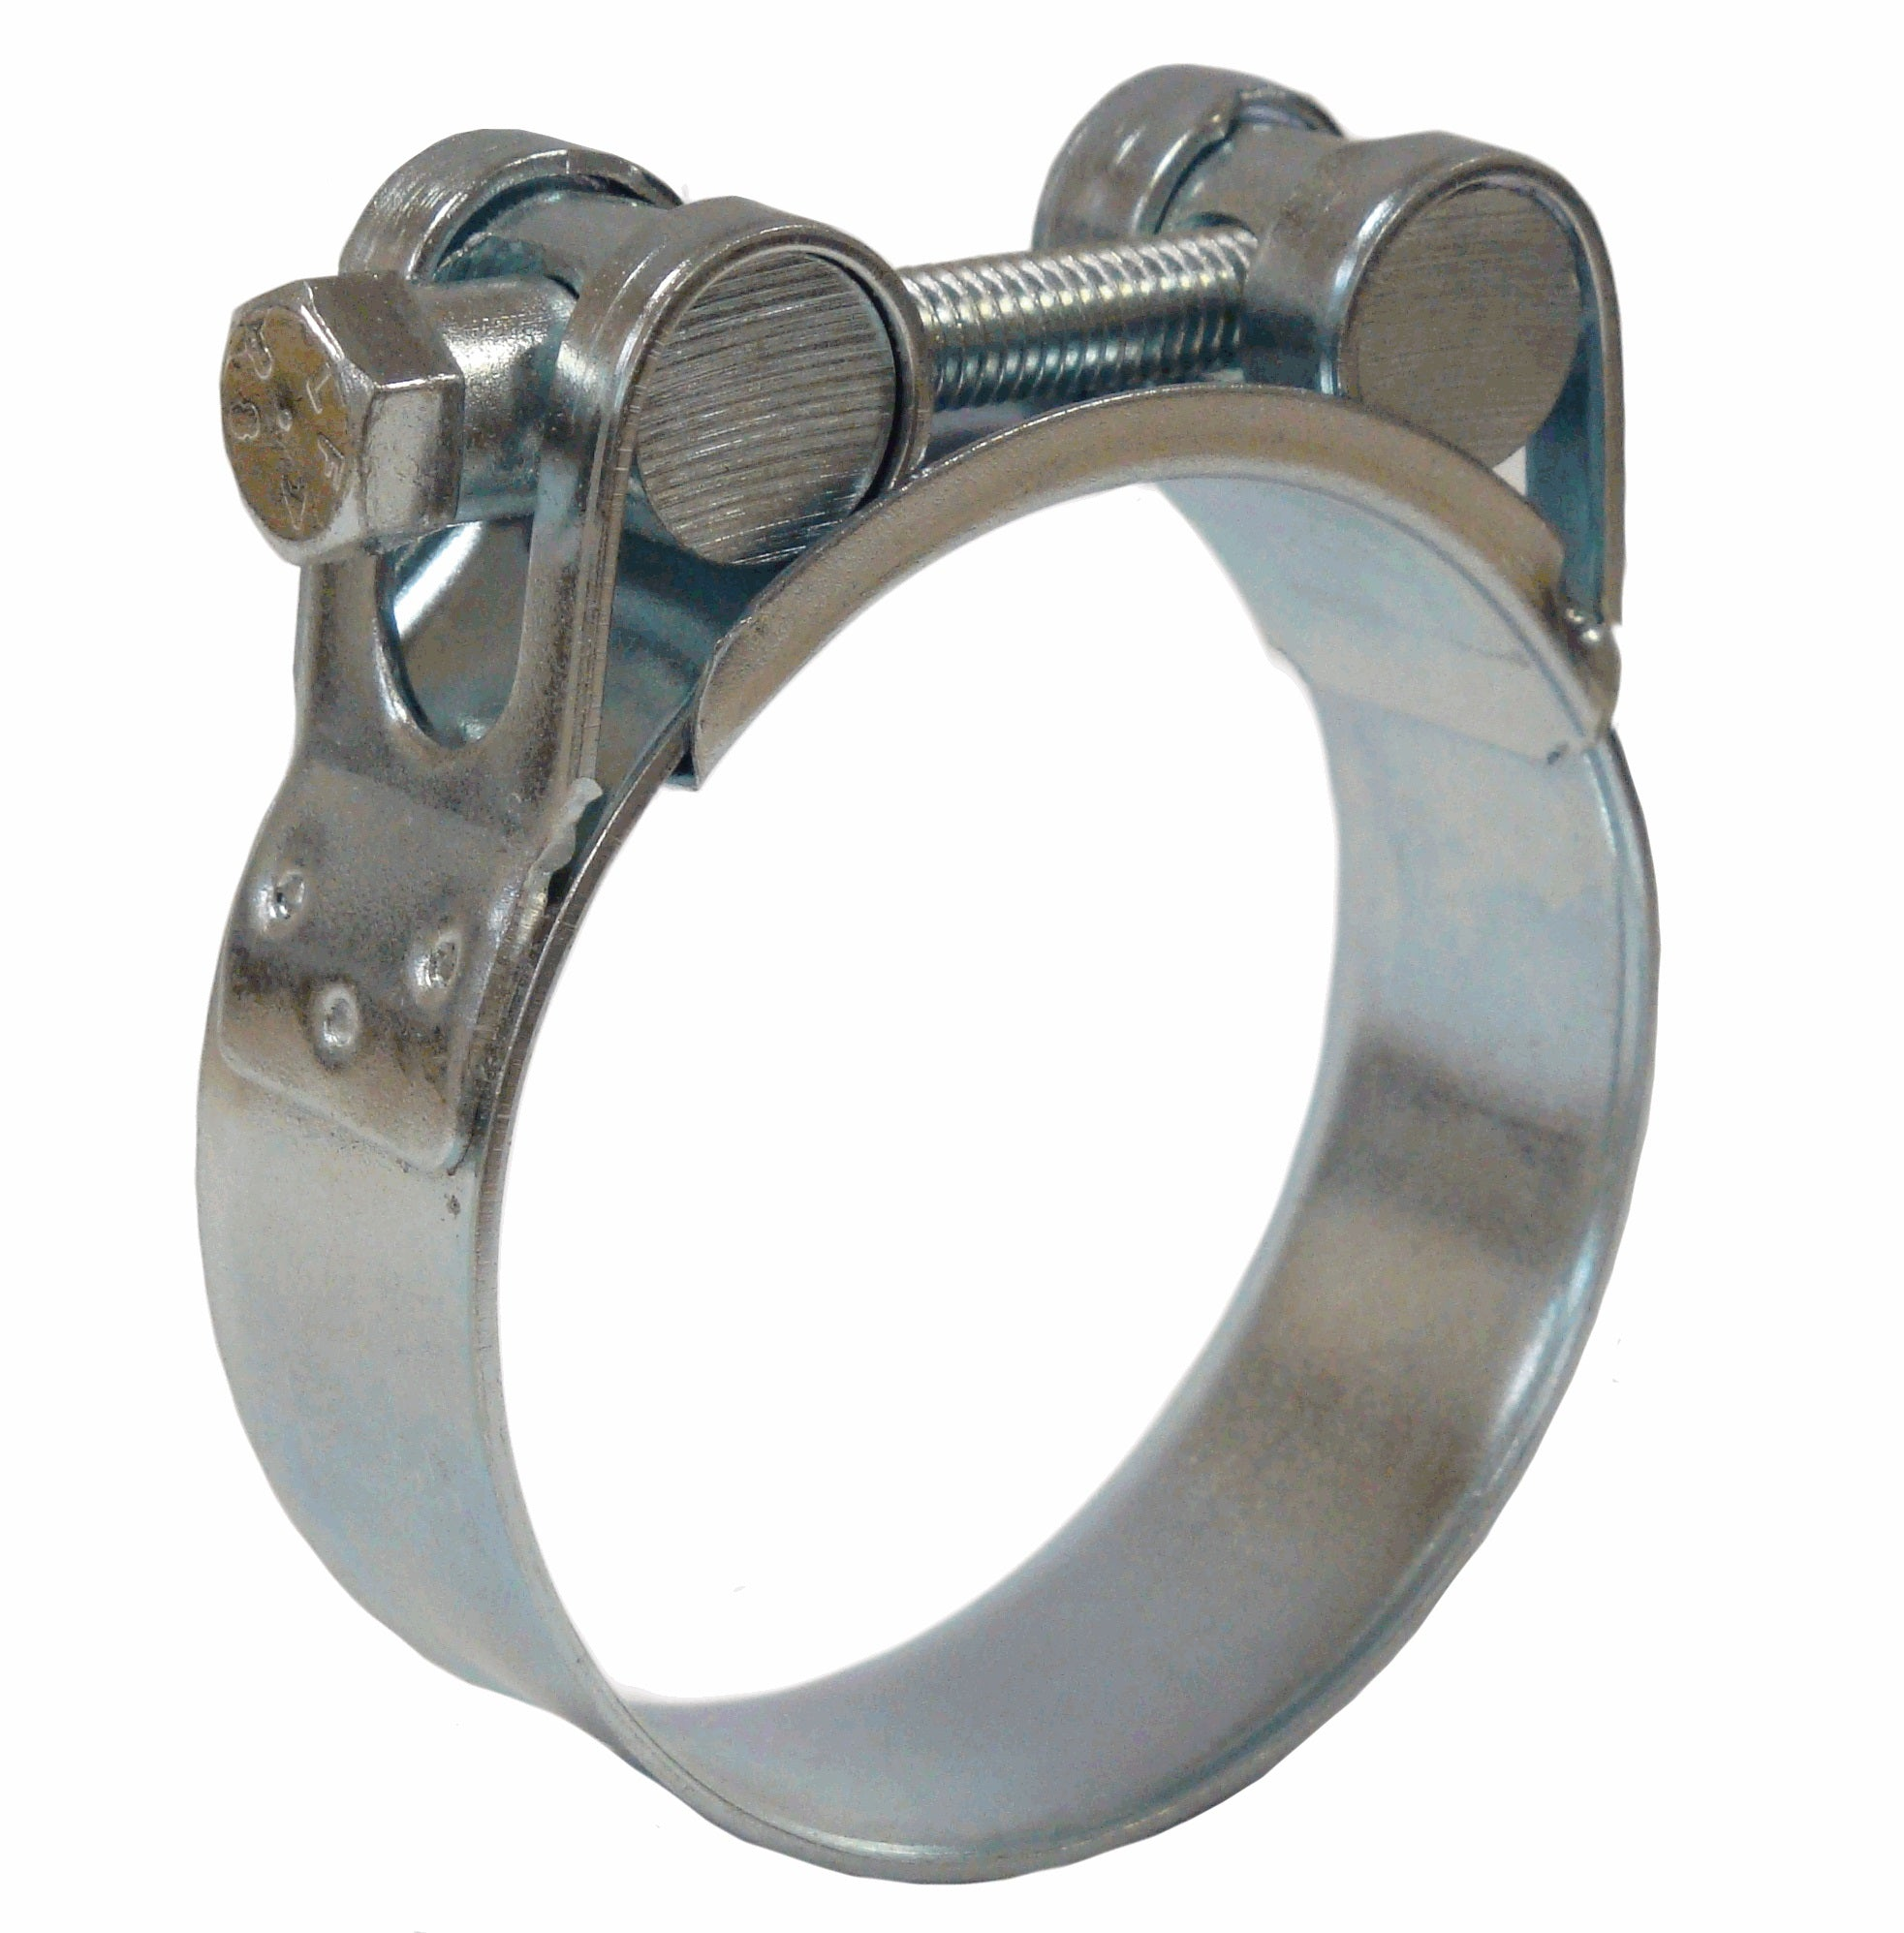 Jubilee® Superclamp 92-97mm 316 Stainless Steel